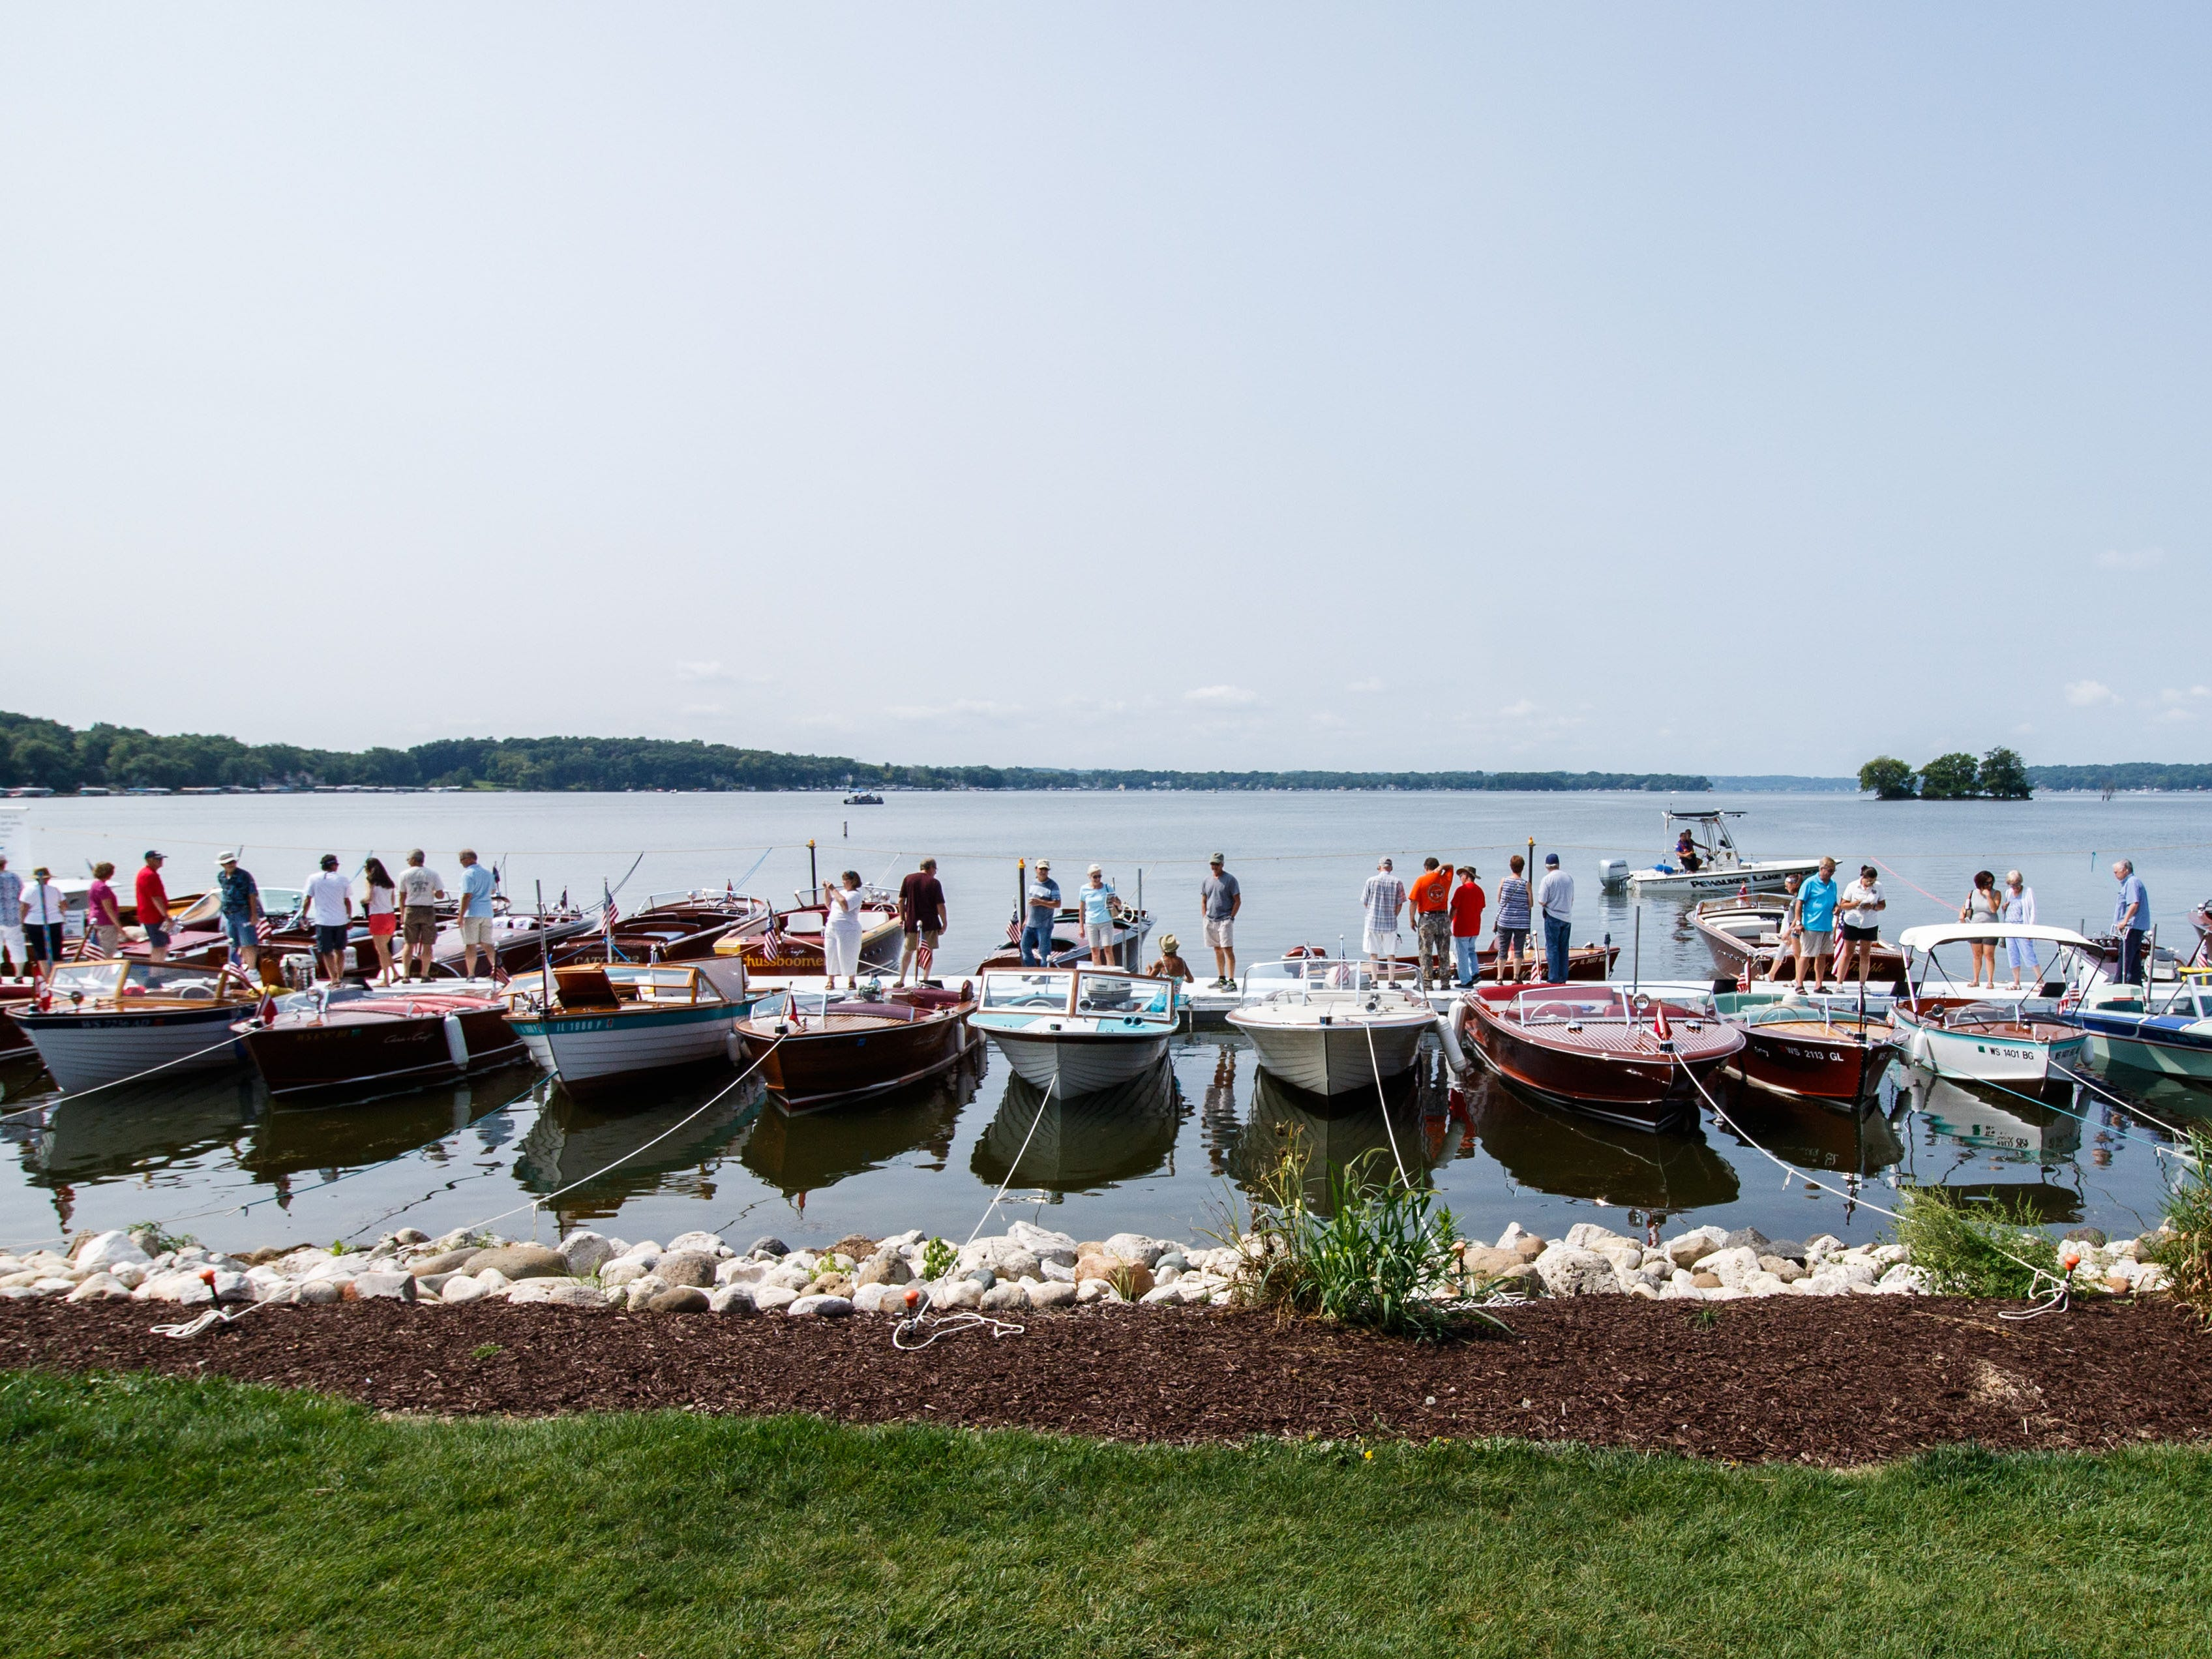 Boating enthusiasts enjoy a day on Pewaukee's lakefront during the 14th annual Pewaukee Antique & Classic Boat Show & Vintage Car Show on Saturday, August 18, 2018. The event, hosted by the Glacier Lakes Chapter of the Antique and Classic Boat Society, features antique and classic boats, classic cars, vintage big wheel bicycles, live music, children's activities and more.